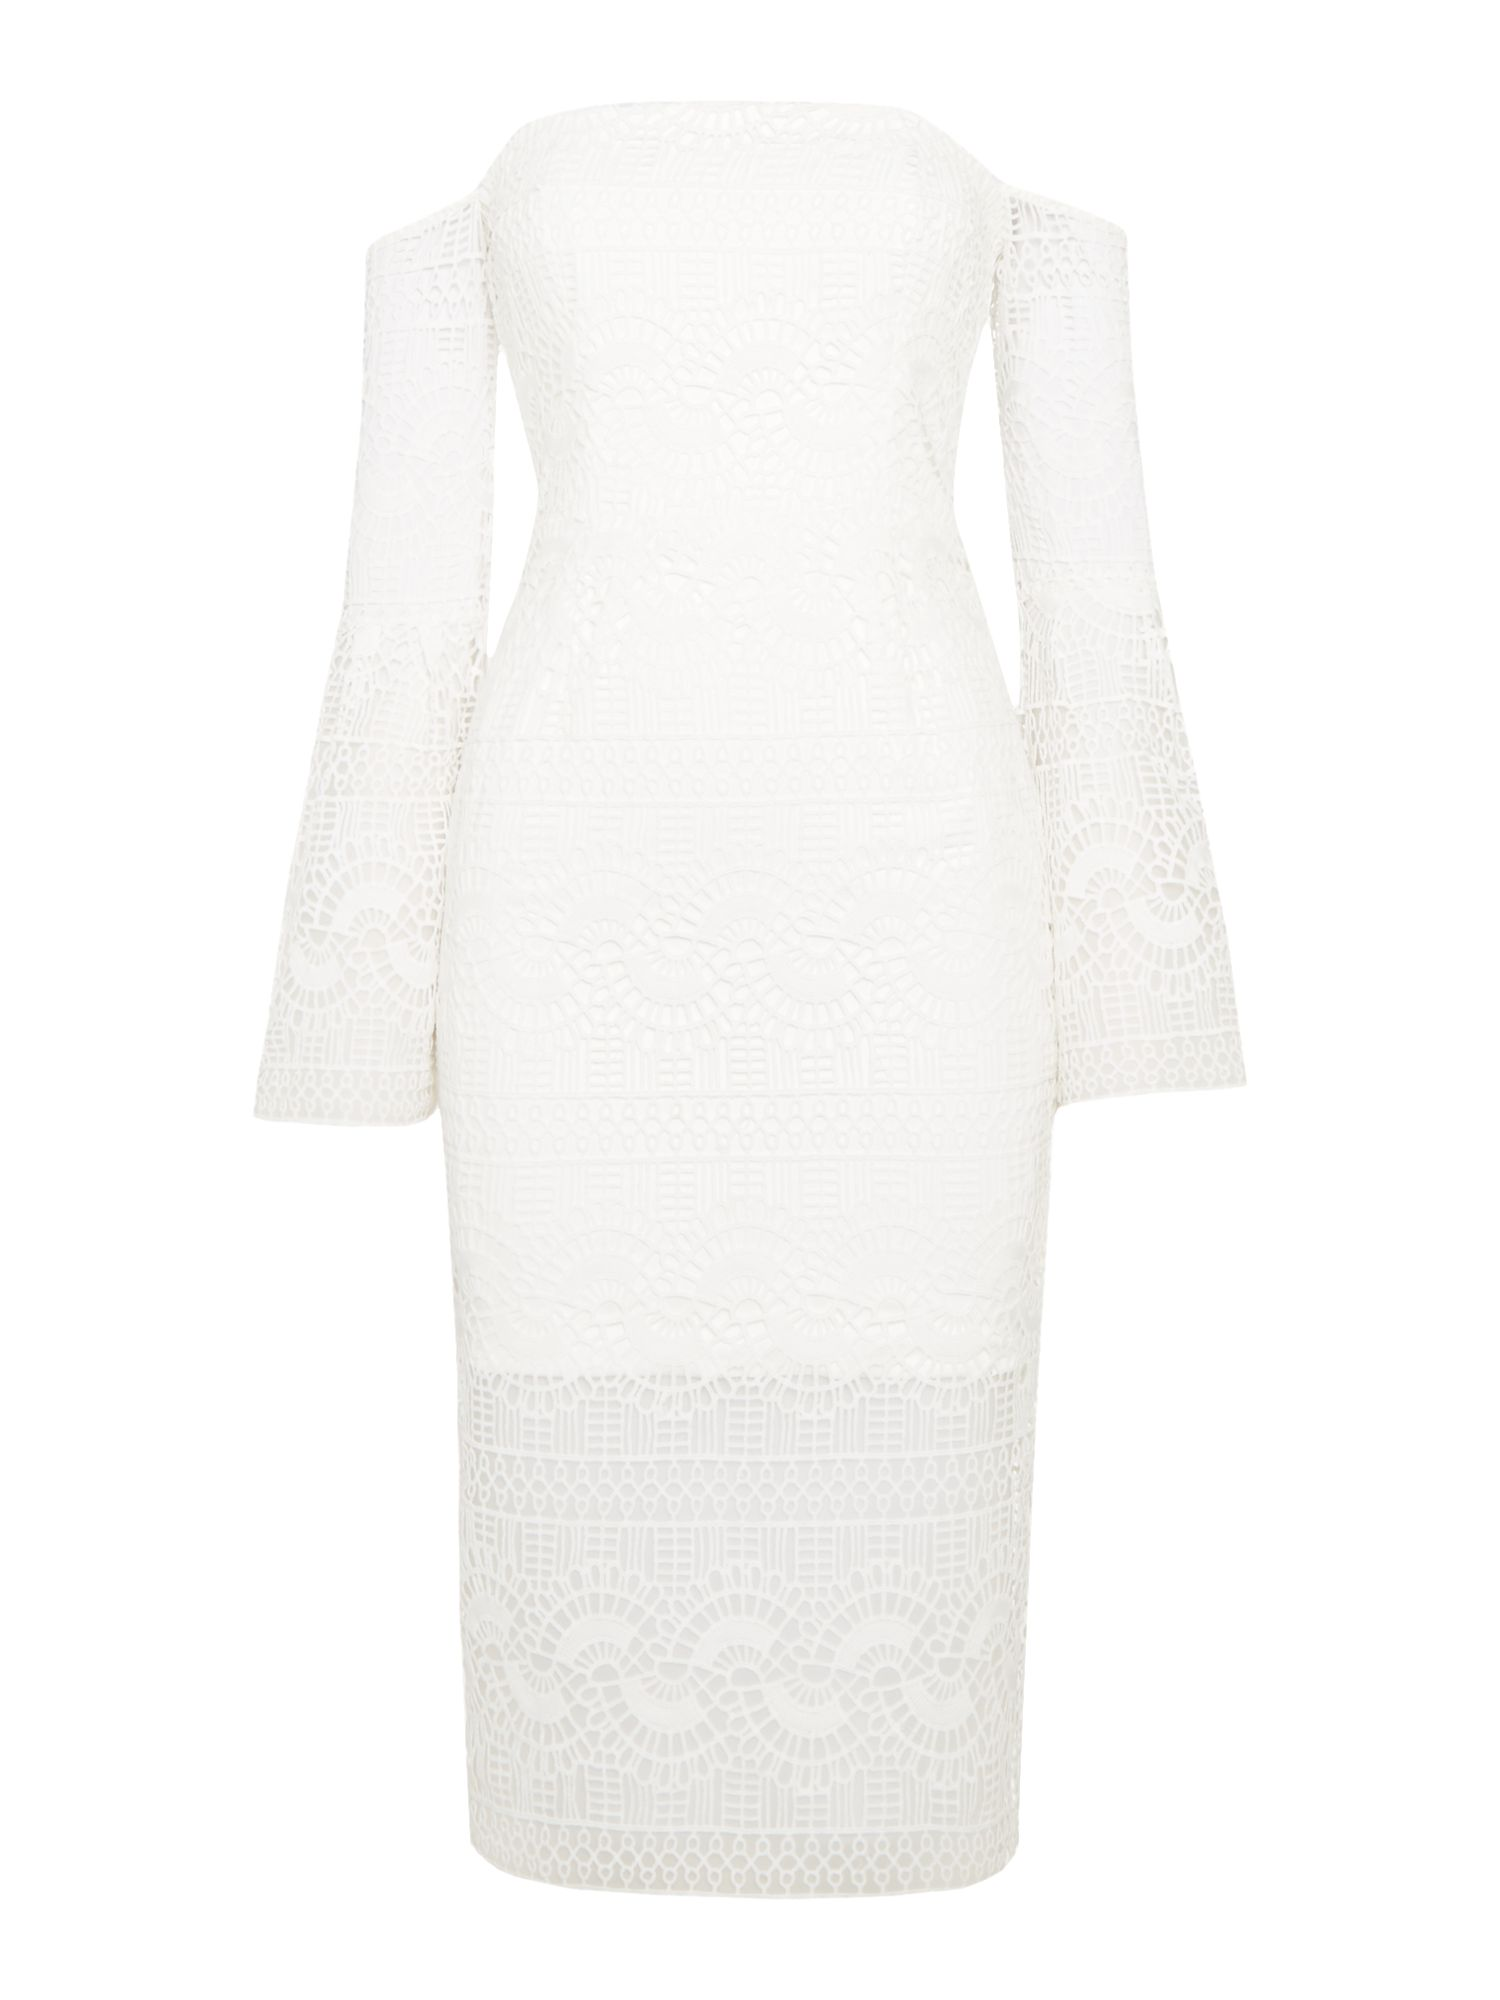 Bardot Geo Lace bardot neckline lace midi dress, White